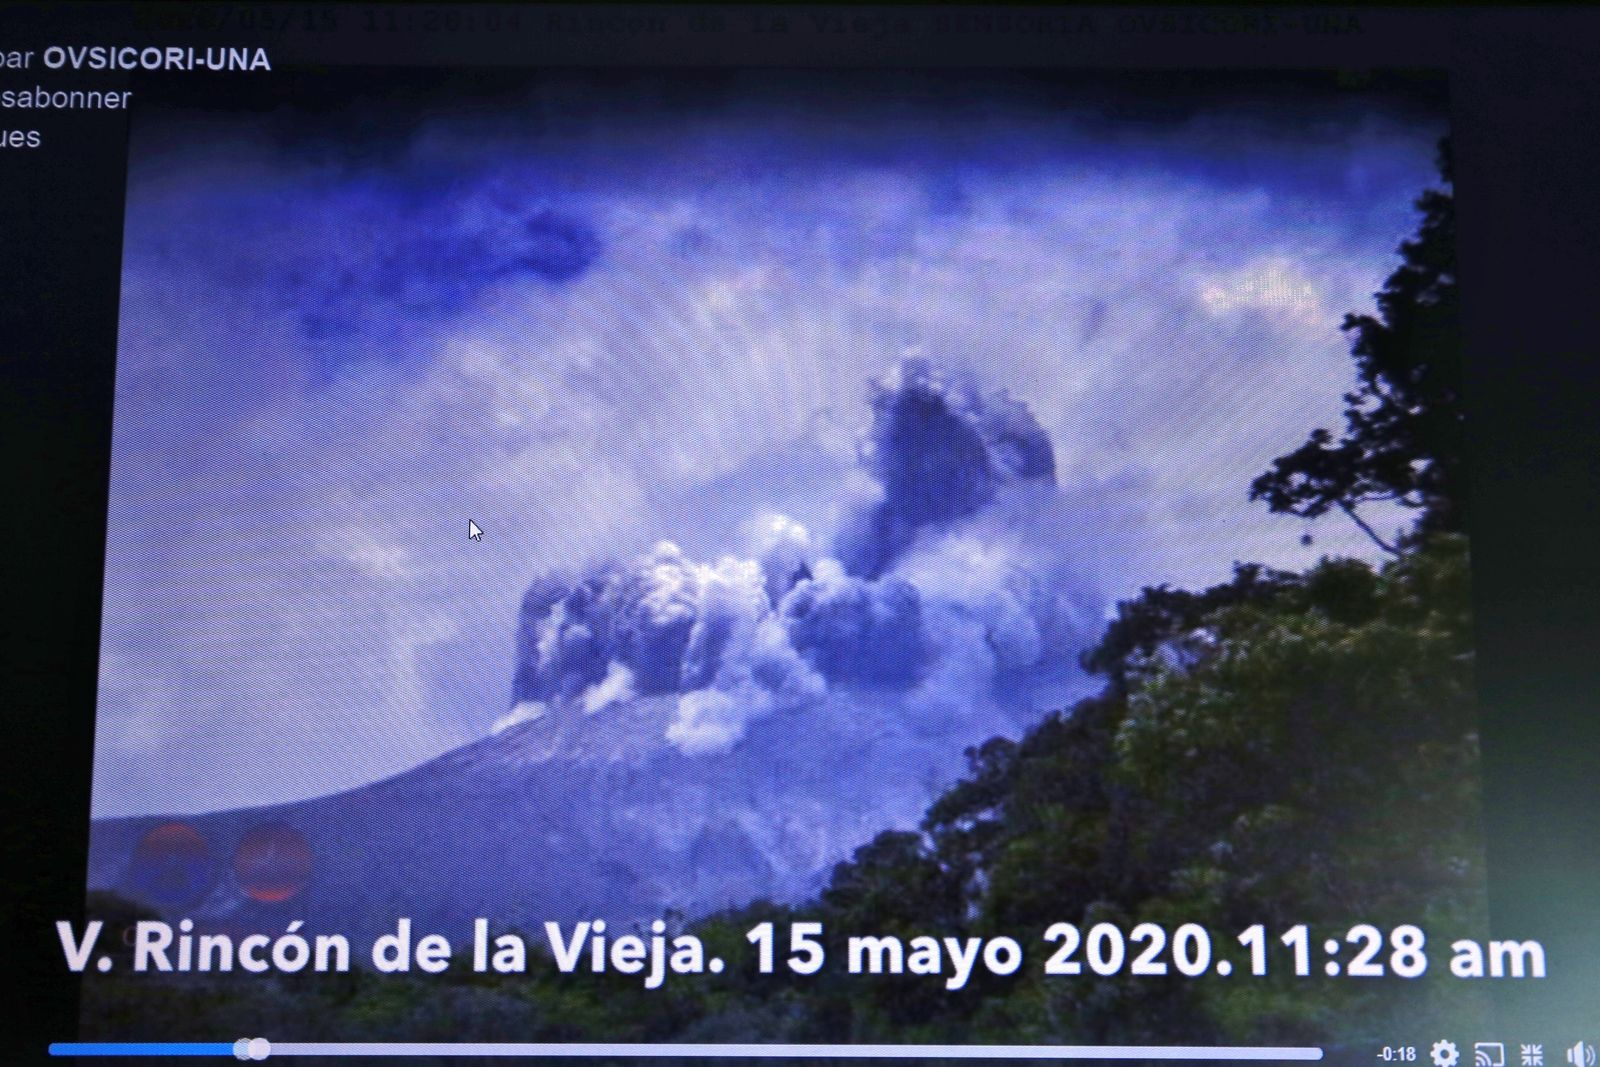 Rincon de La Vieja - hydrothermal eruption of 15.05.2020 / 11.28 am - Screan Ovsicori video